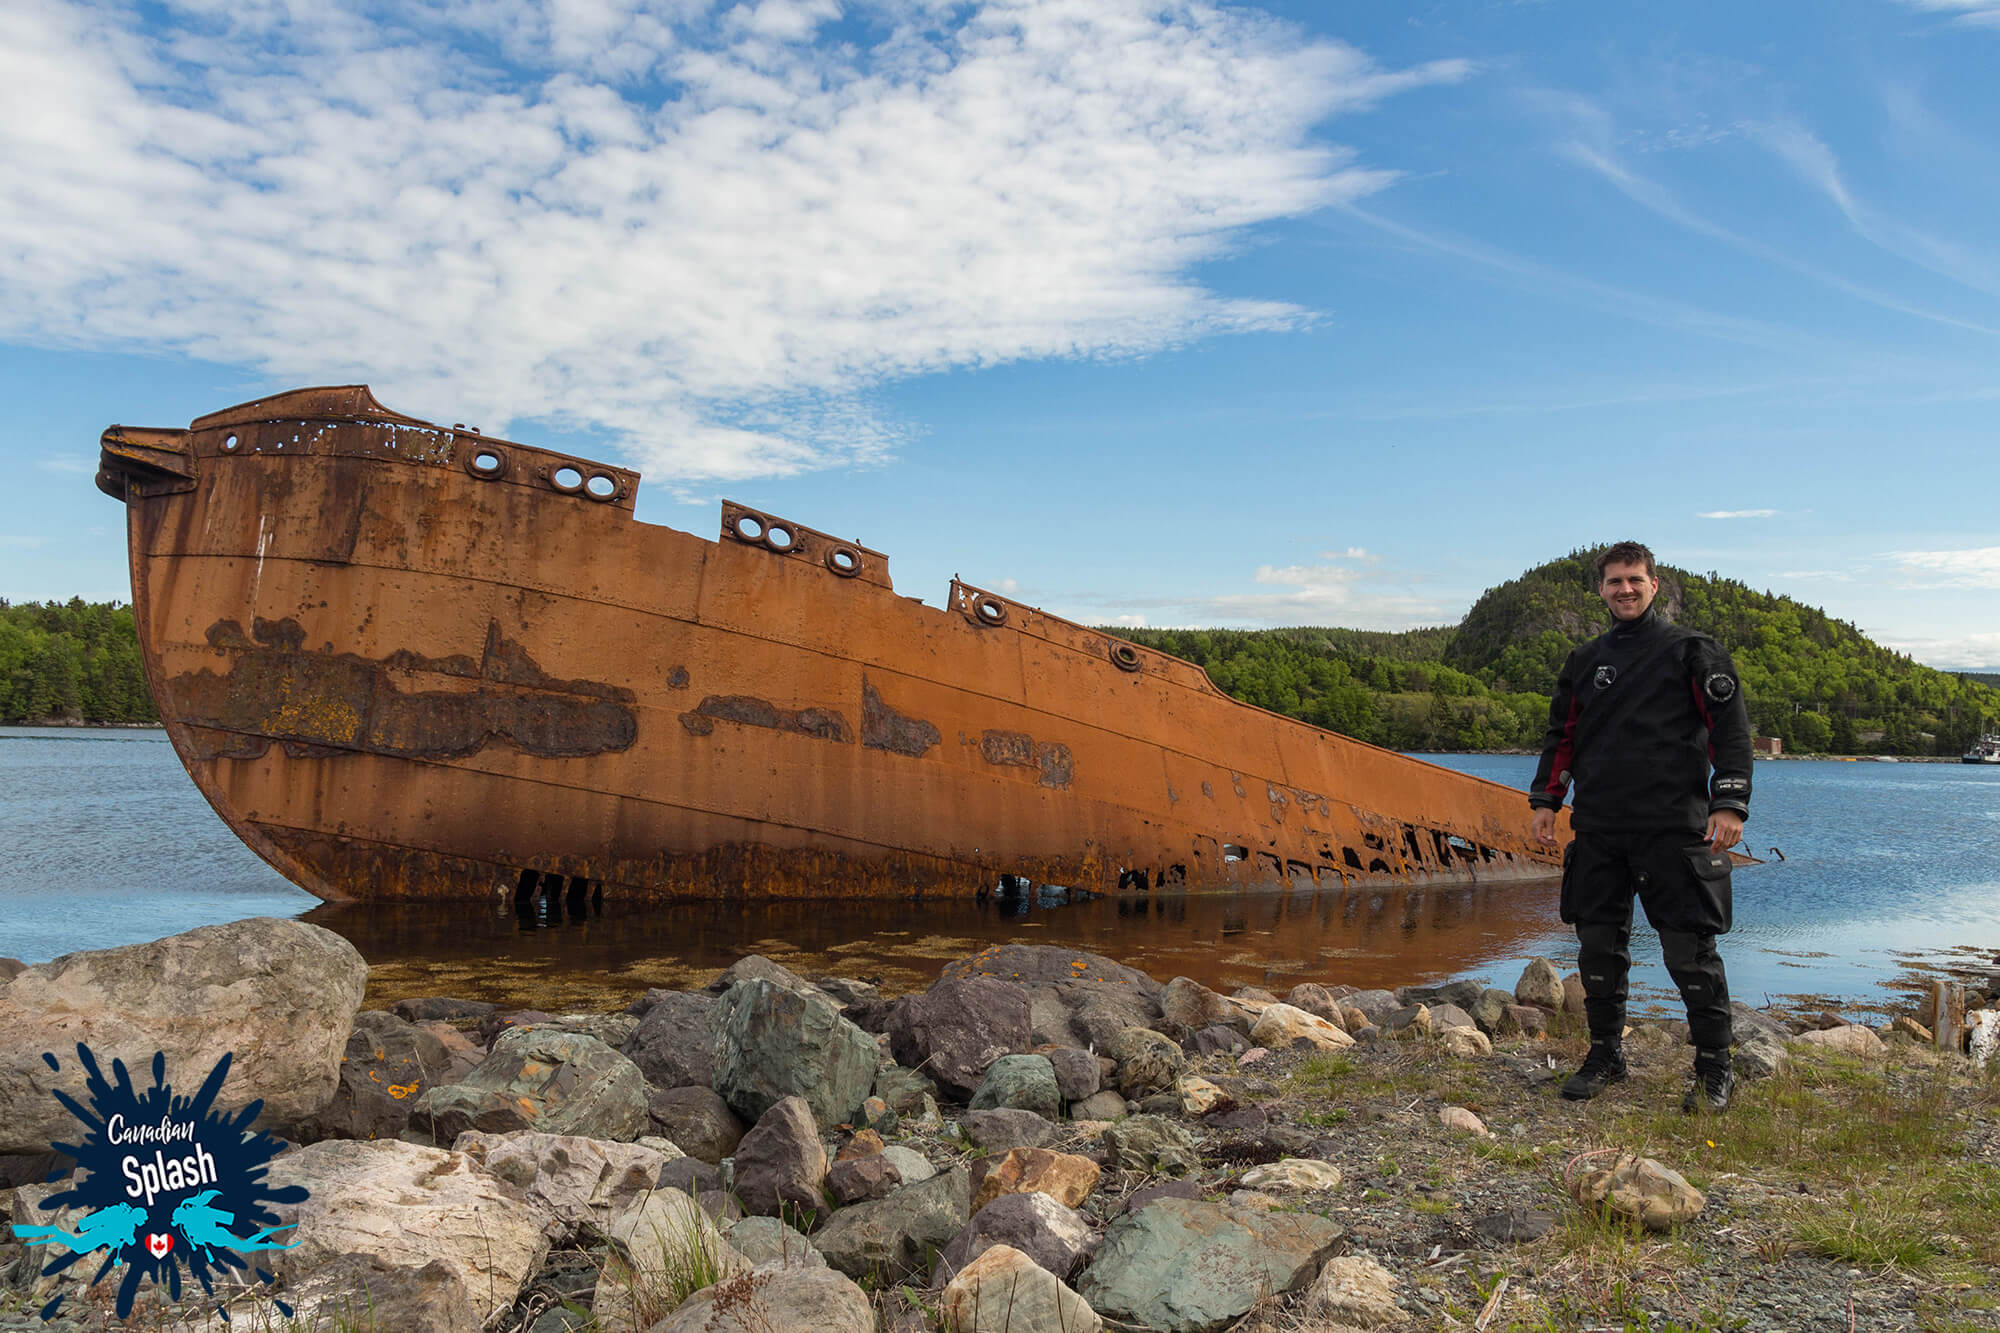 Joey Standing Beside A Newfoundland Whaling Shipwreck On The Coast Of Conception Bay, Canada Scuba Diving